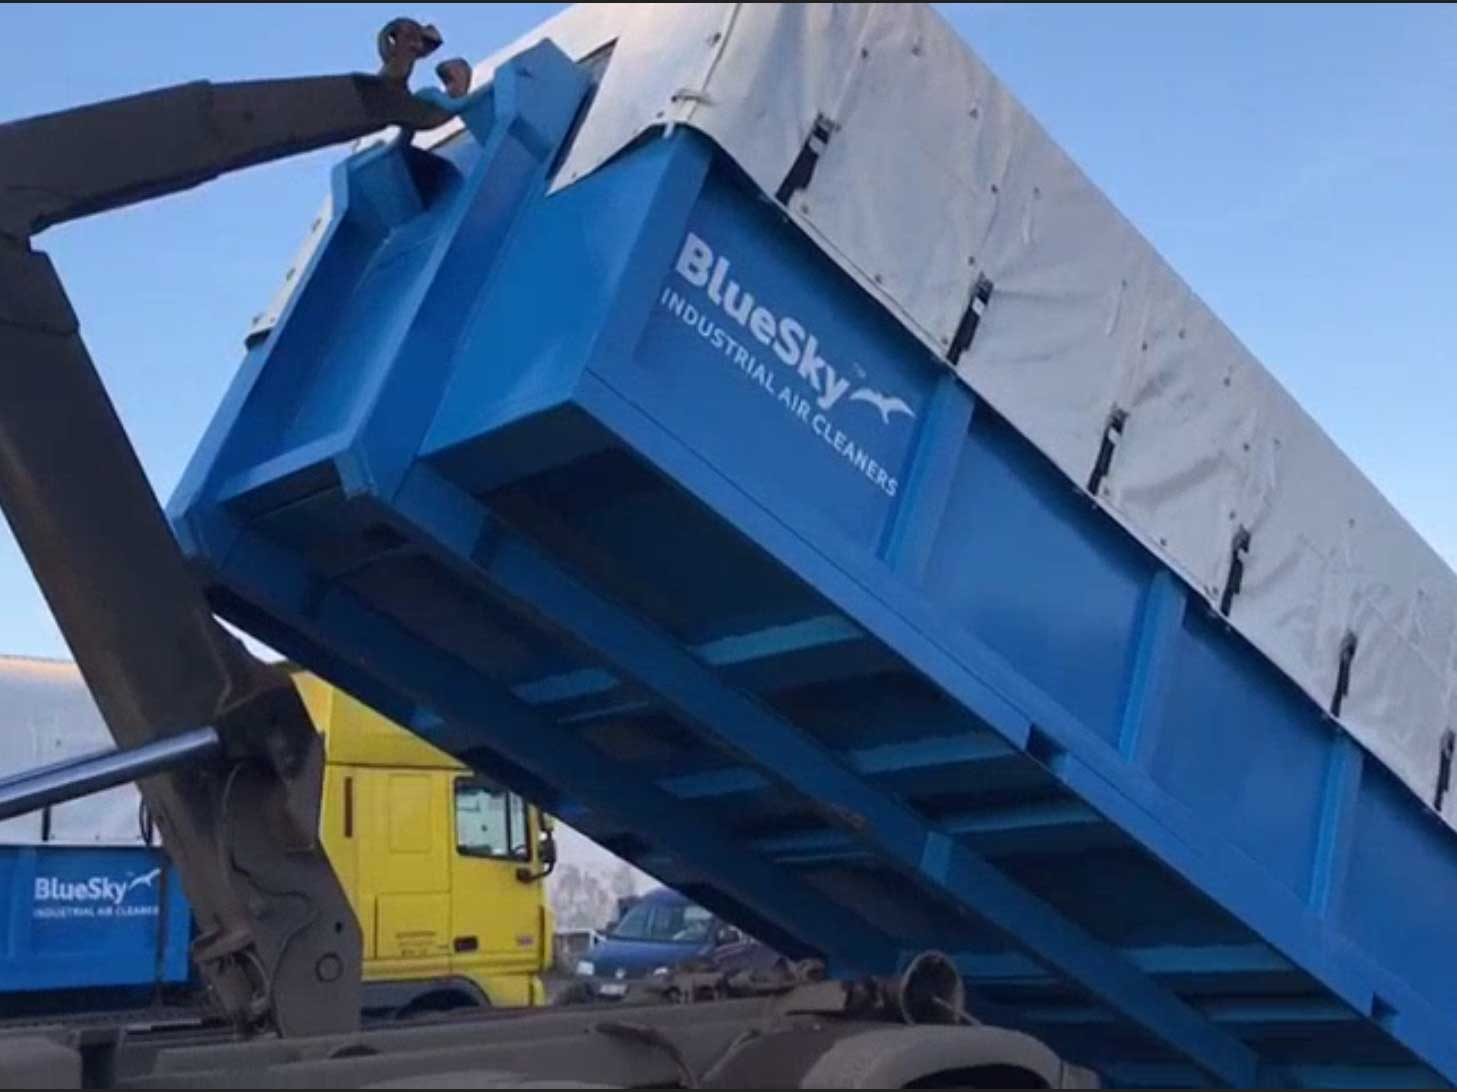 Lead dustcollector delivered by BlueSky